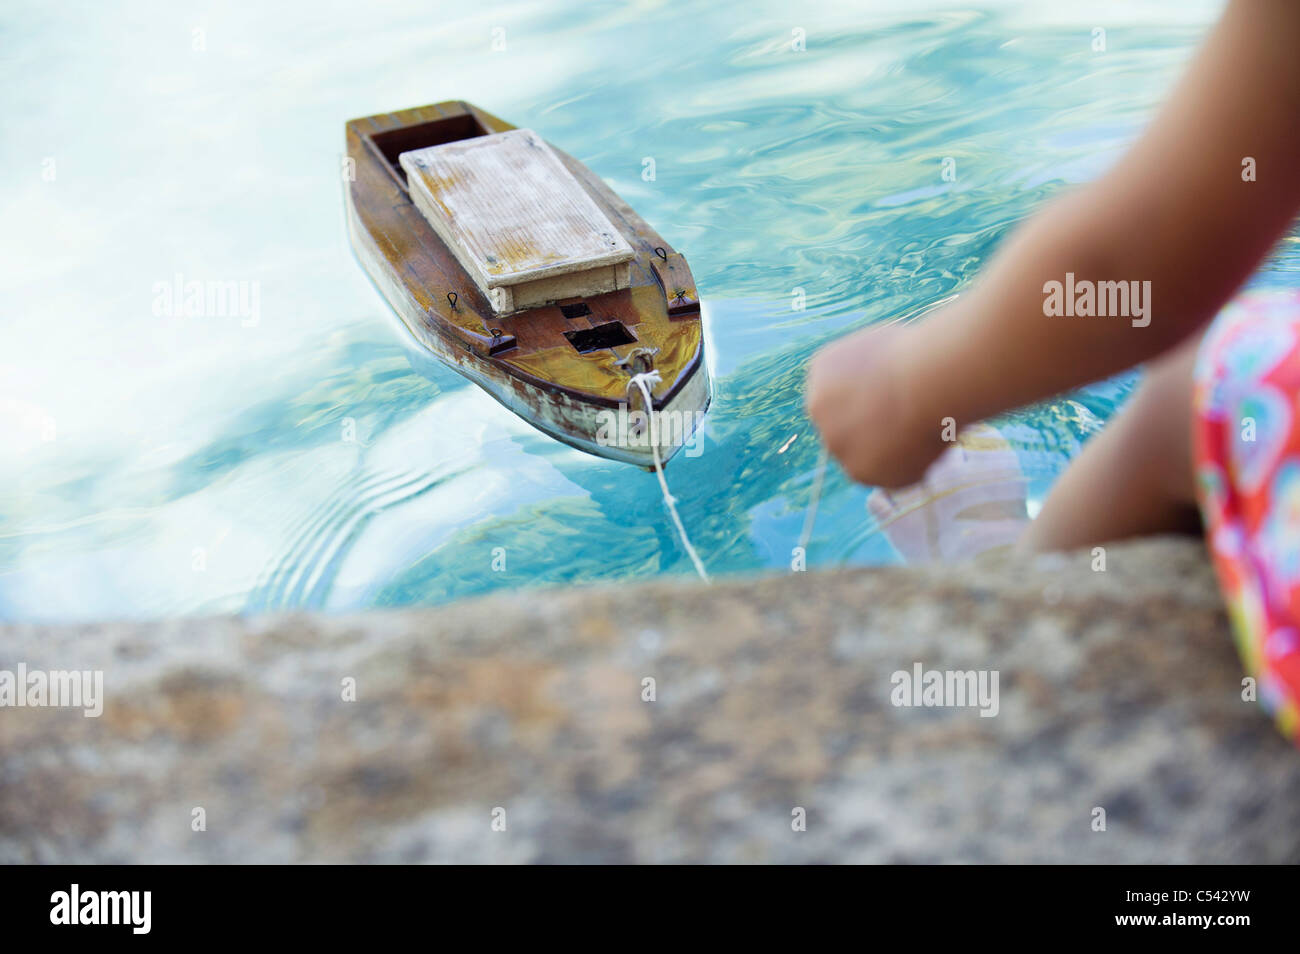 Low section view of a girl sitting at edge of swimming pool with toy boat in water - Stock Image